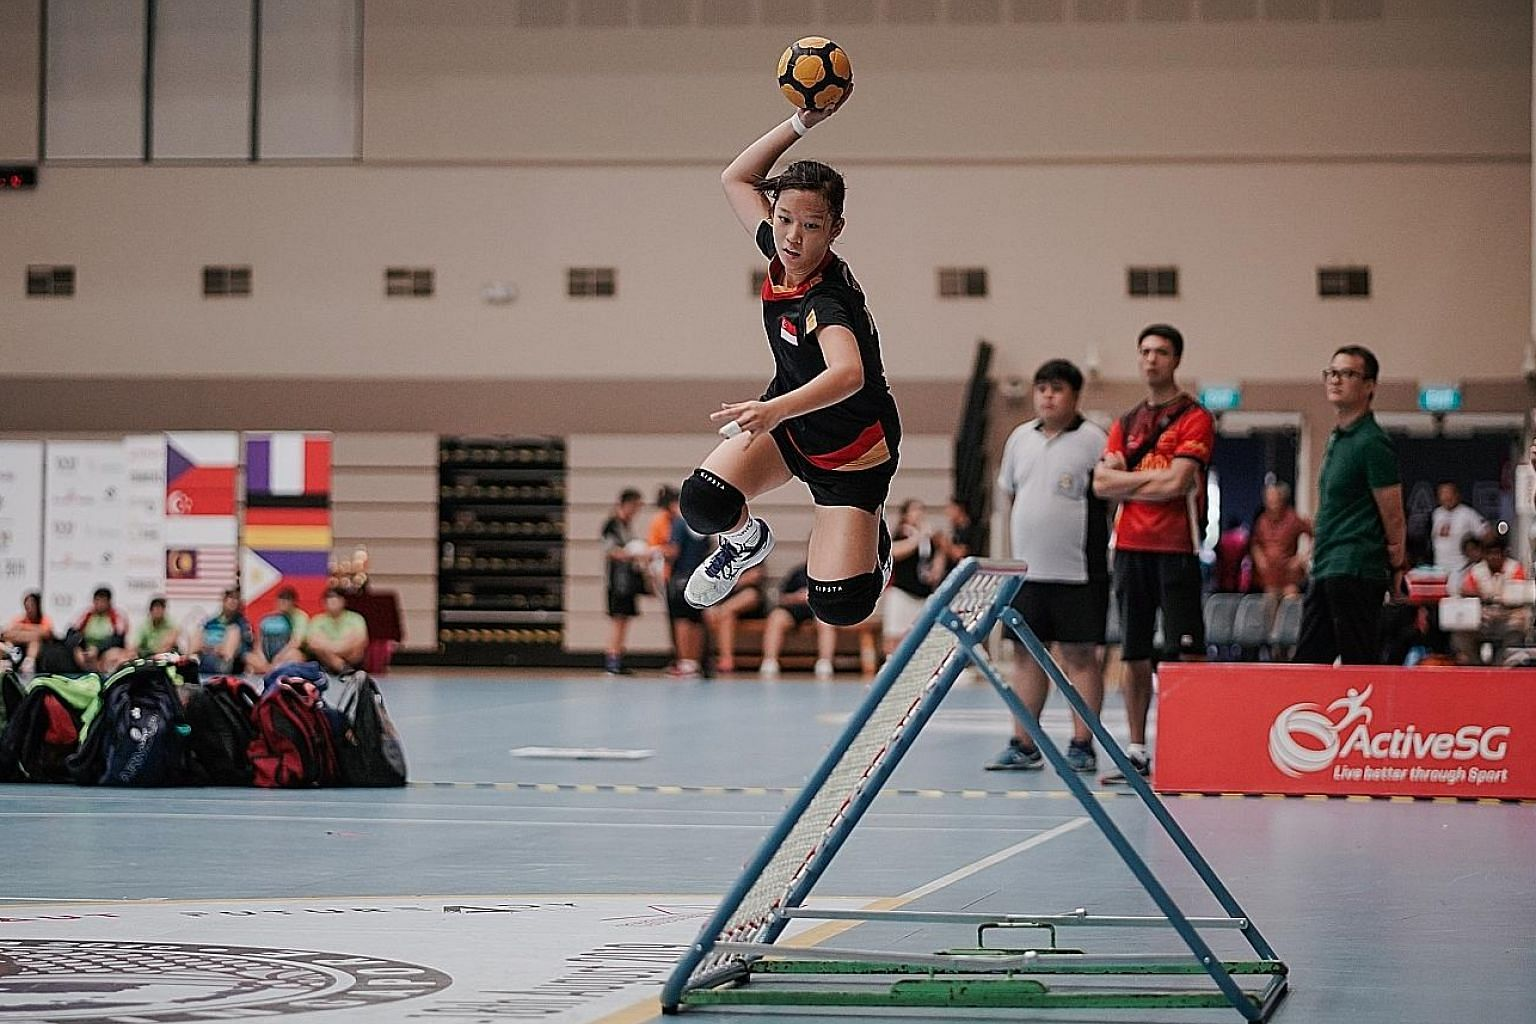 Celine Sheum scoring a goal as the Singapore U-18 girls beat Chinese Taipei 38-30 in the final at the World Youth Tchoukball Championships. ST PHOTO: ONG WEE KIAT